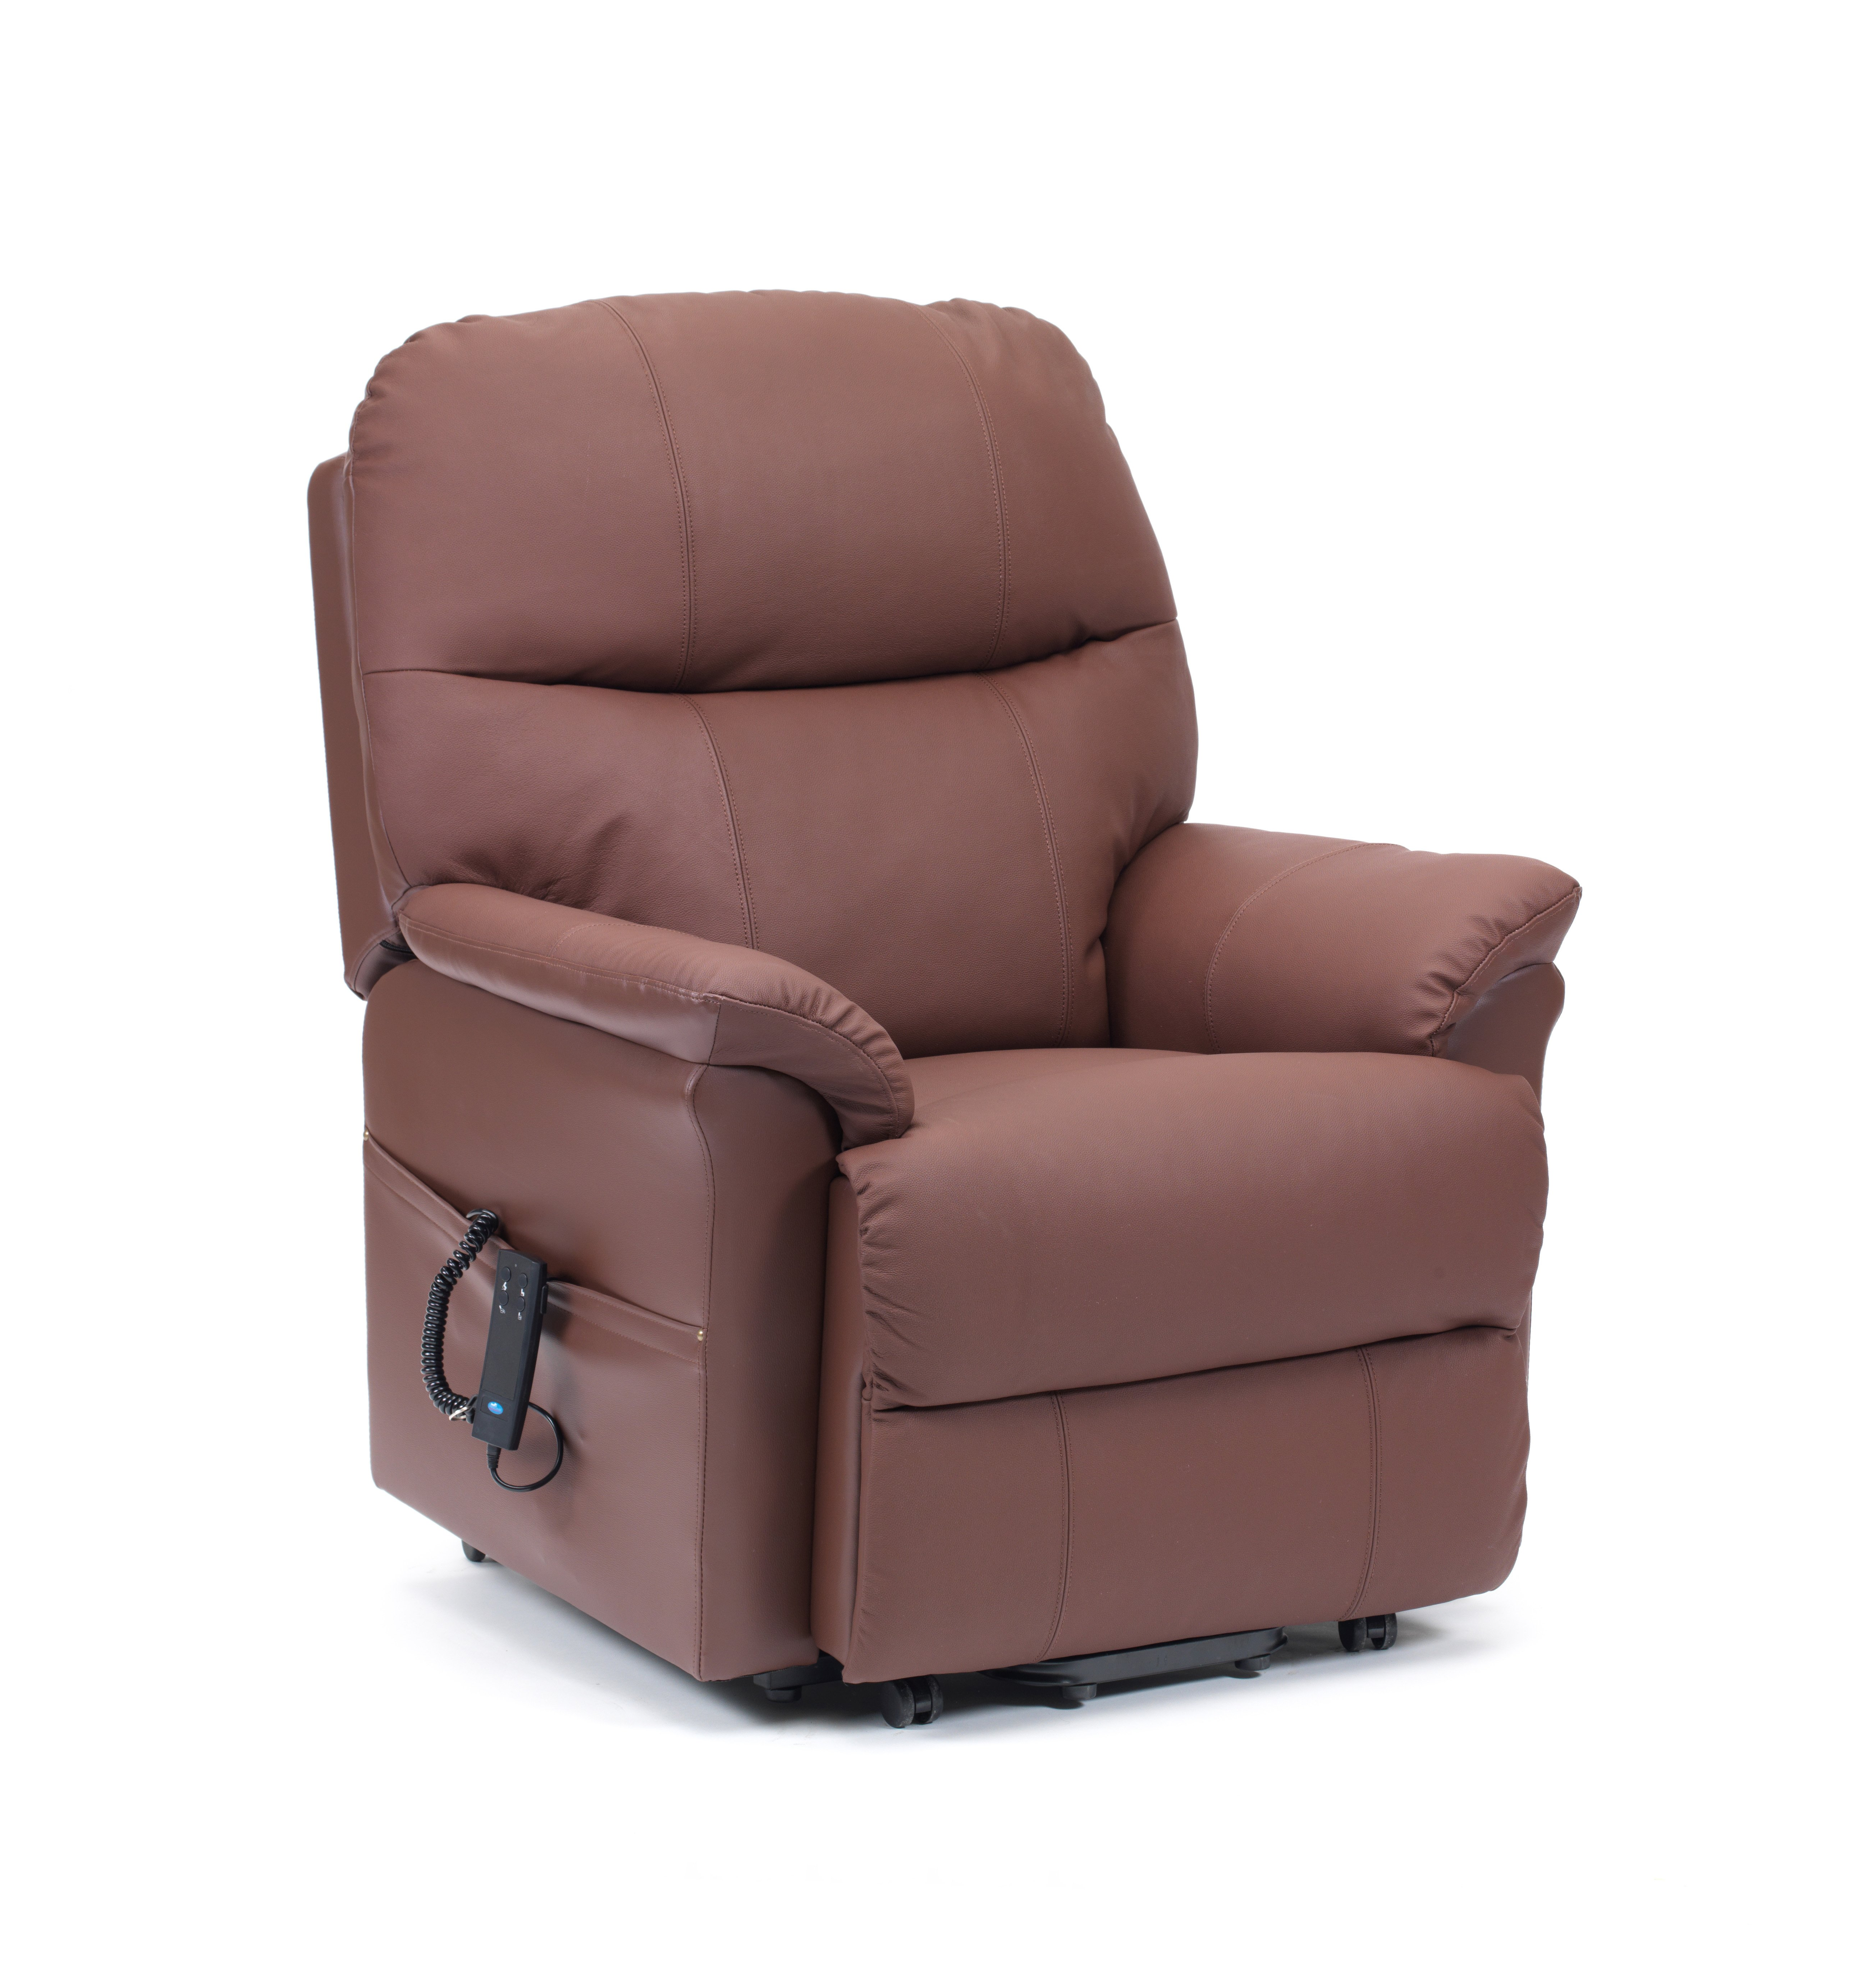 Orthopaedic high chairs & riser recliners in Liverpool